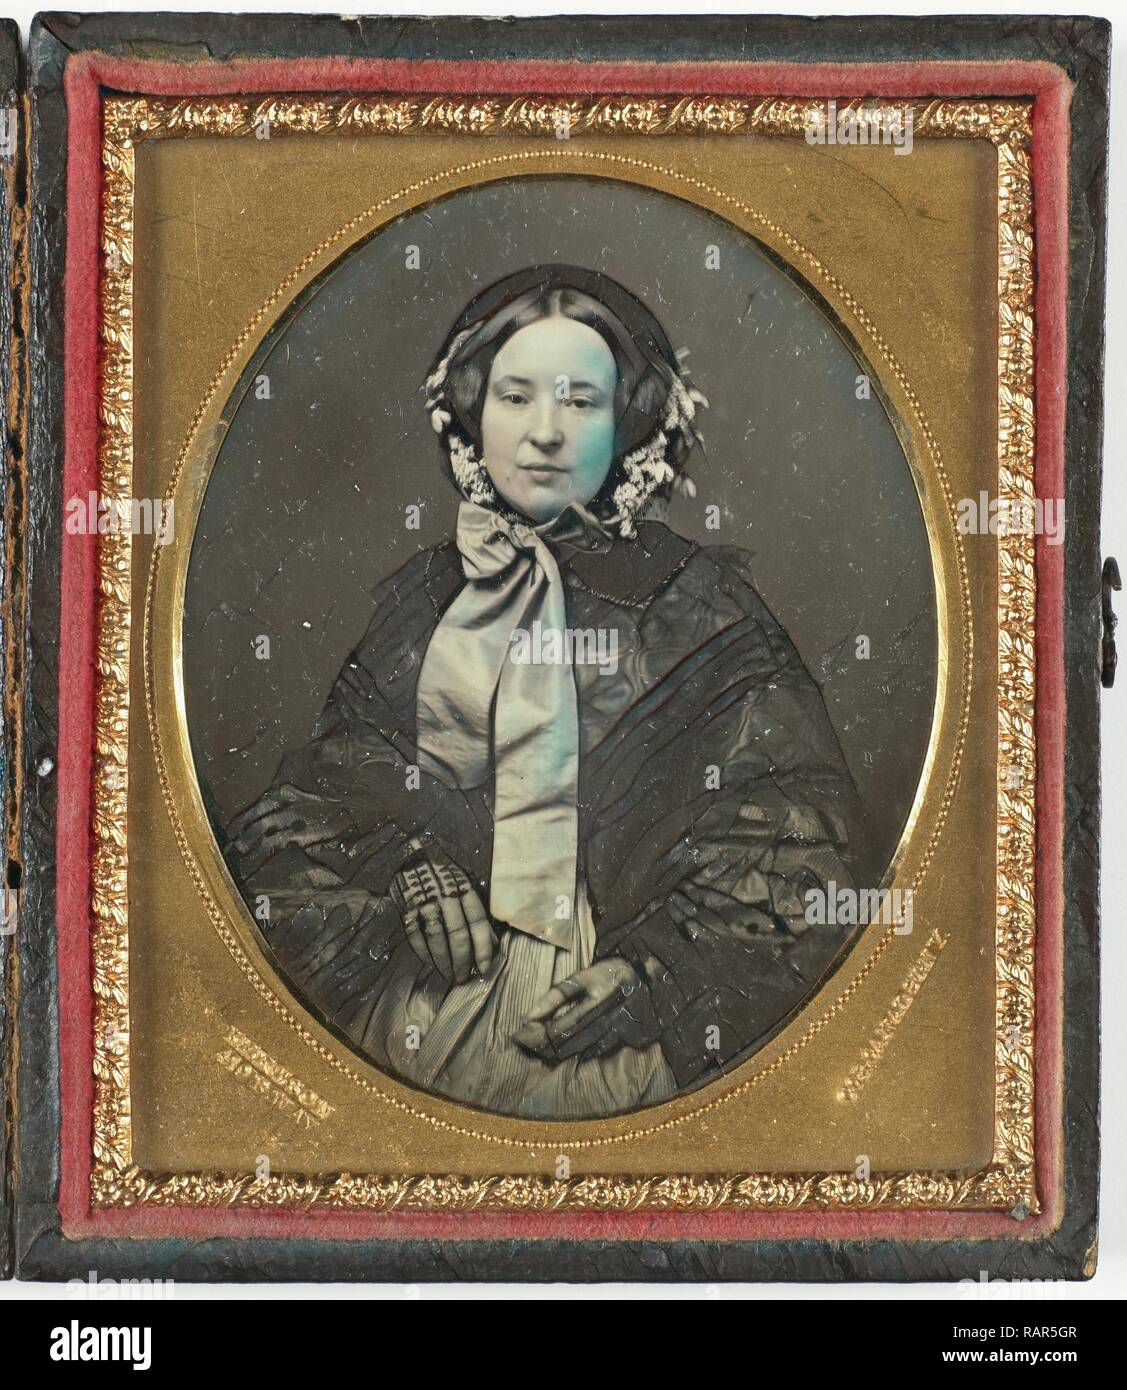 Portrait of a woman, Kertson, 1852. Reimagined by Gibon. Classic art with a modern twist reimagined - Stock Image